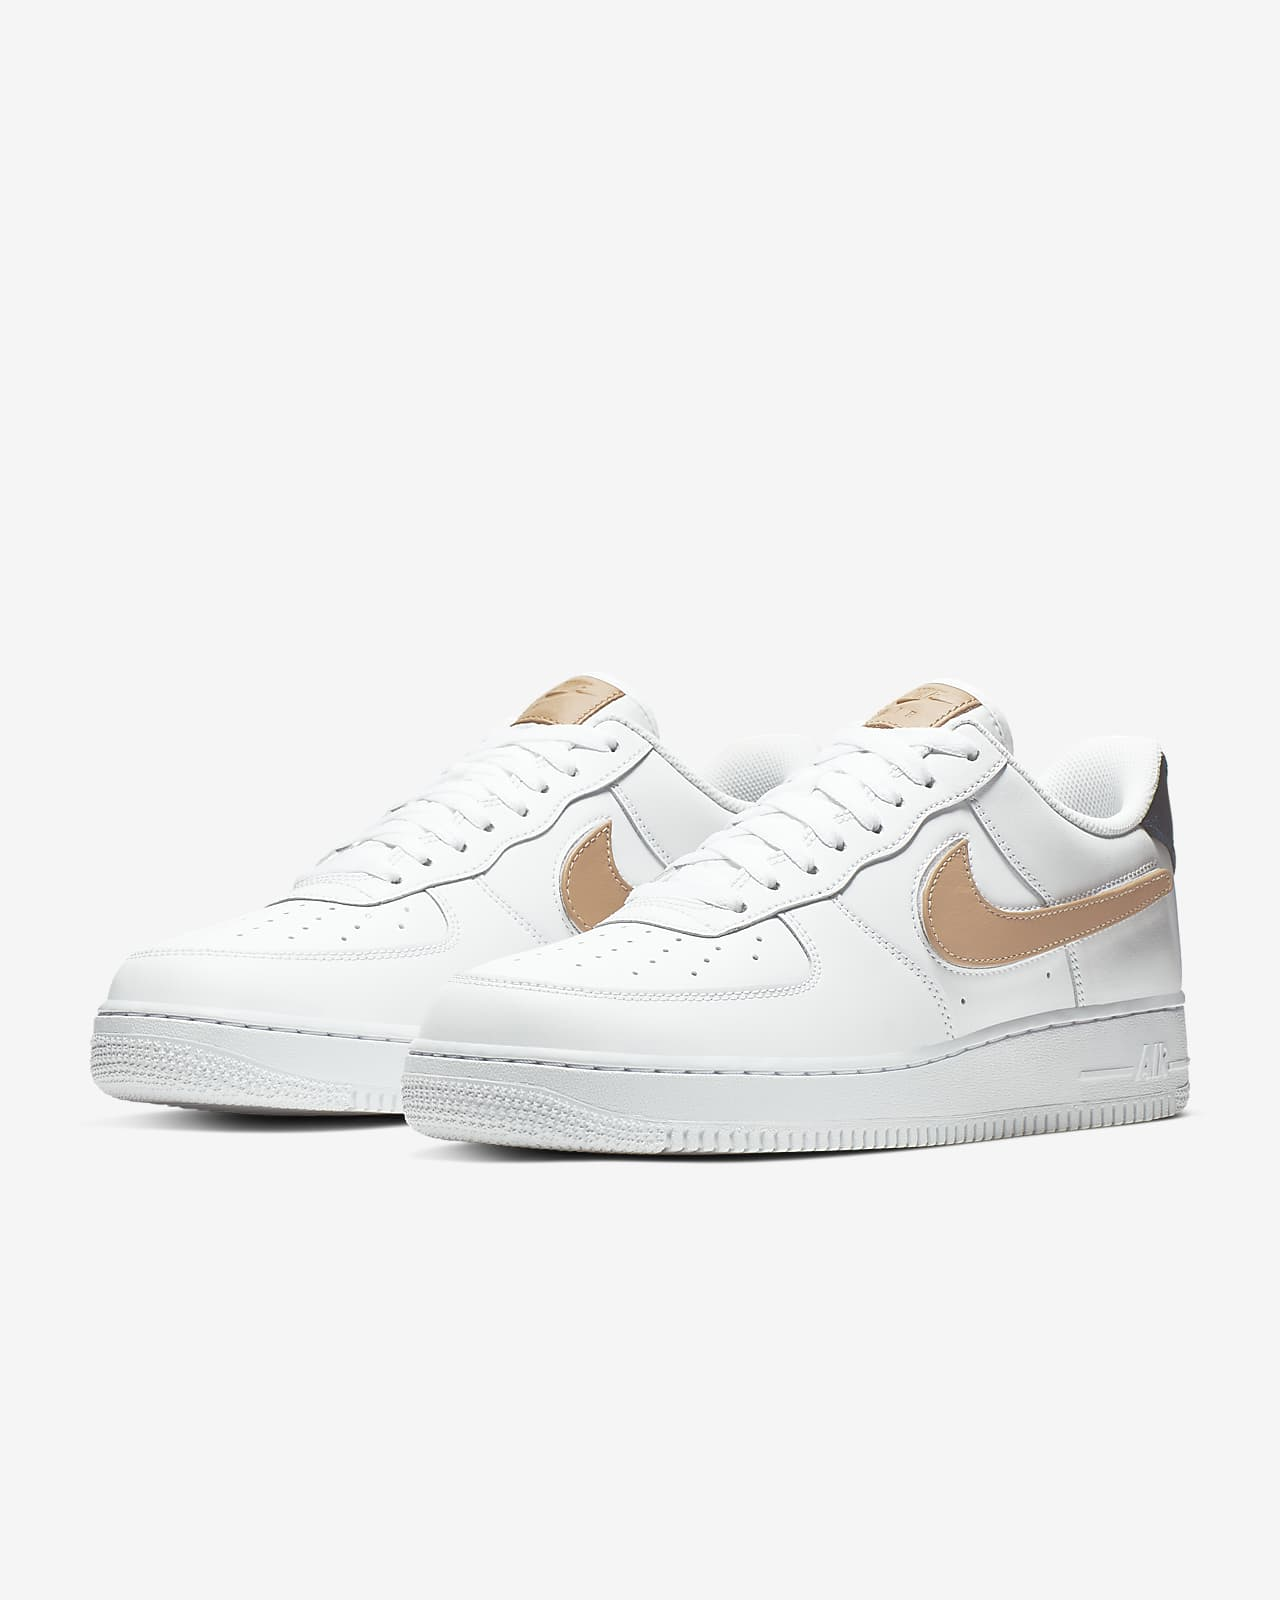 Nike Air Force 1 '07 LV8 3 Removable